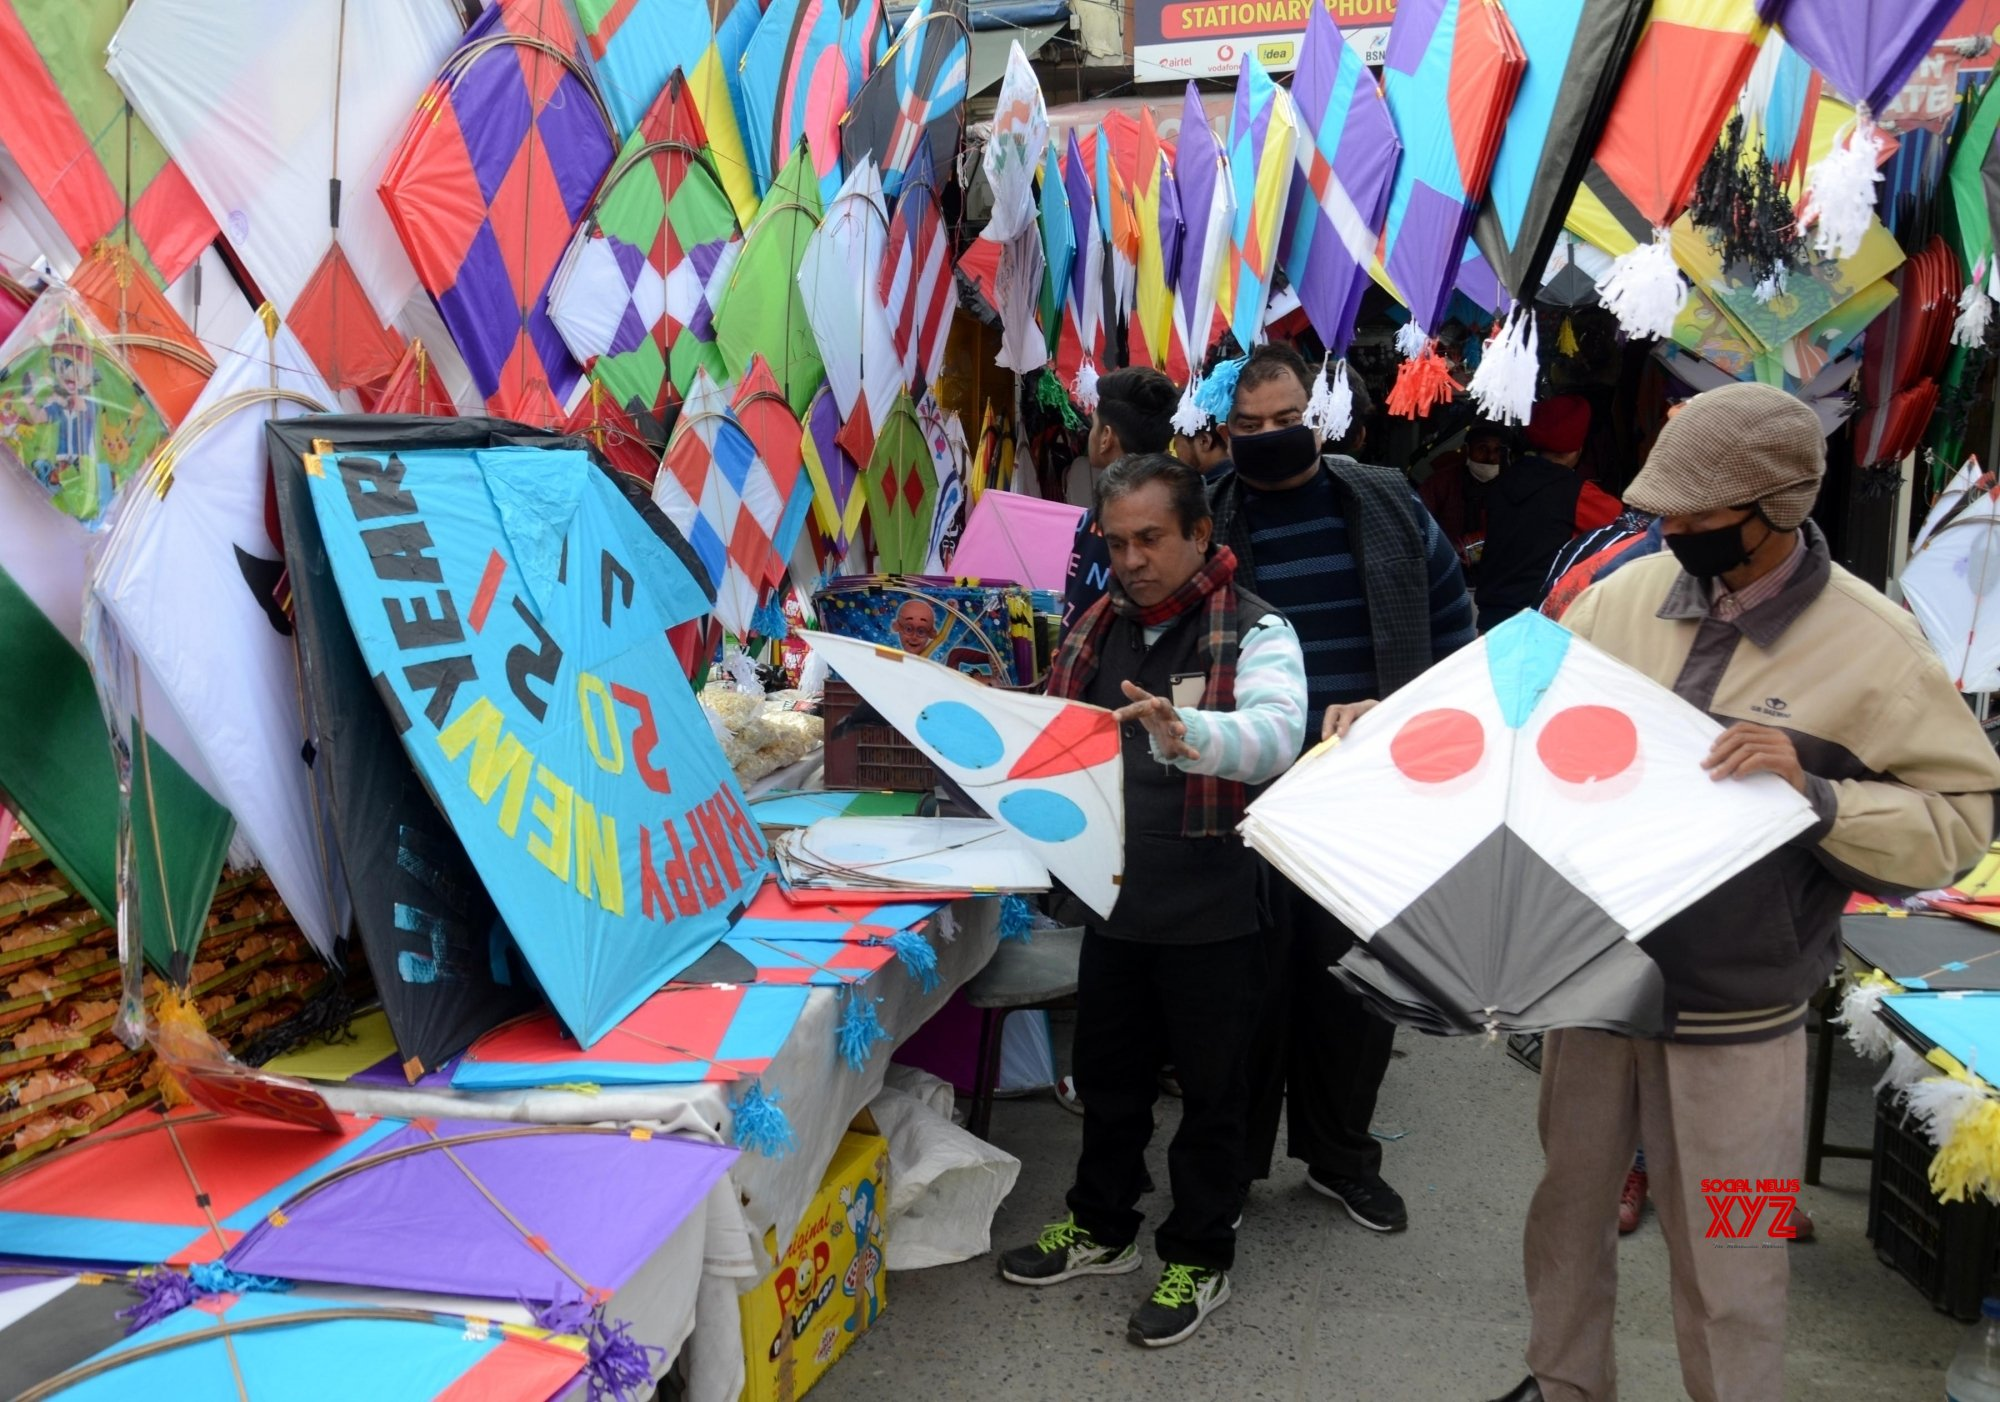 Amritsar: People shop for kites at a shop on the eve of Lohri festival in Amritsar, India, 12 January 2021. #Gallery